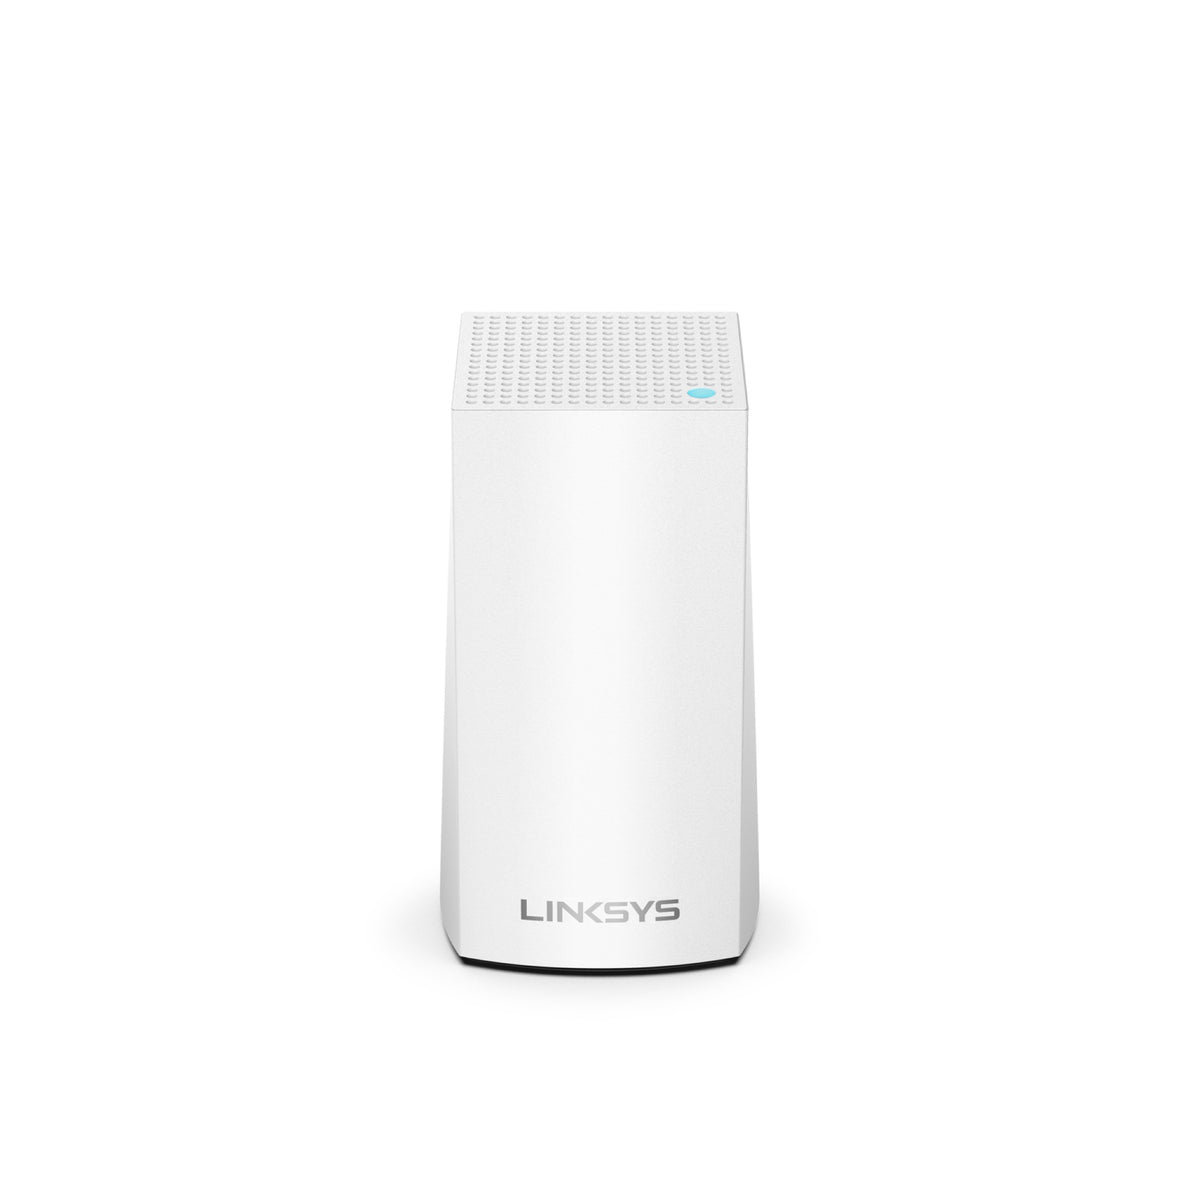 Linksys Velop Intelligent Dual-Band Mesh WiFi System (AC1300)